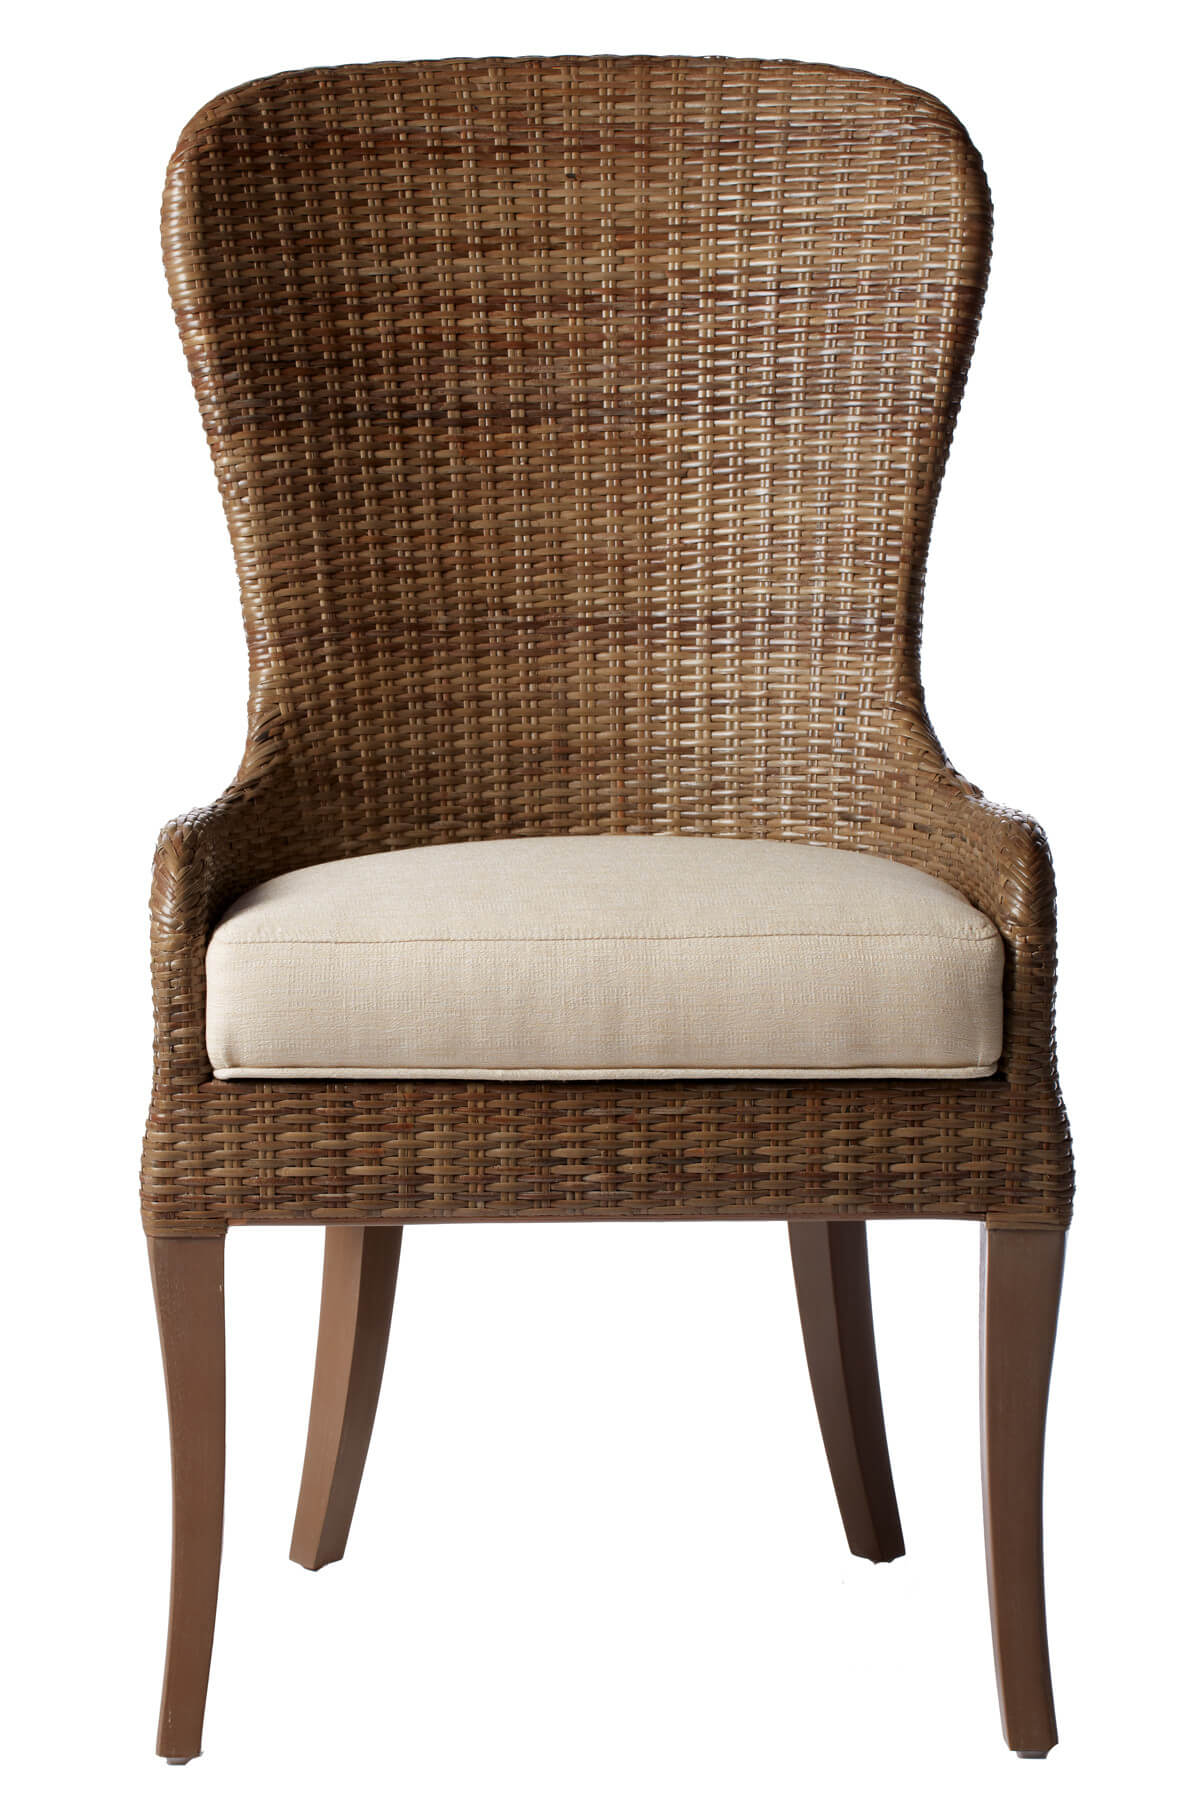 dining chair styles chart swivel office 19 types of room chairs crucial buying guide